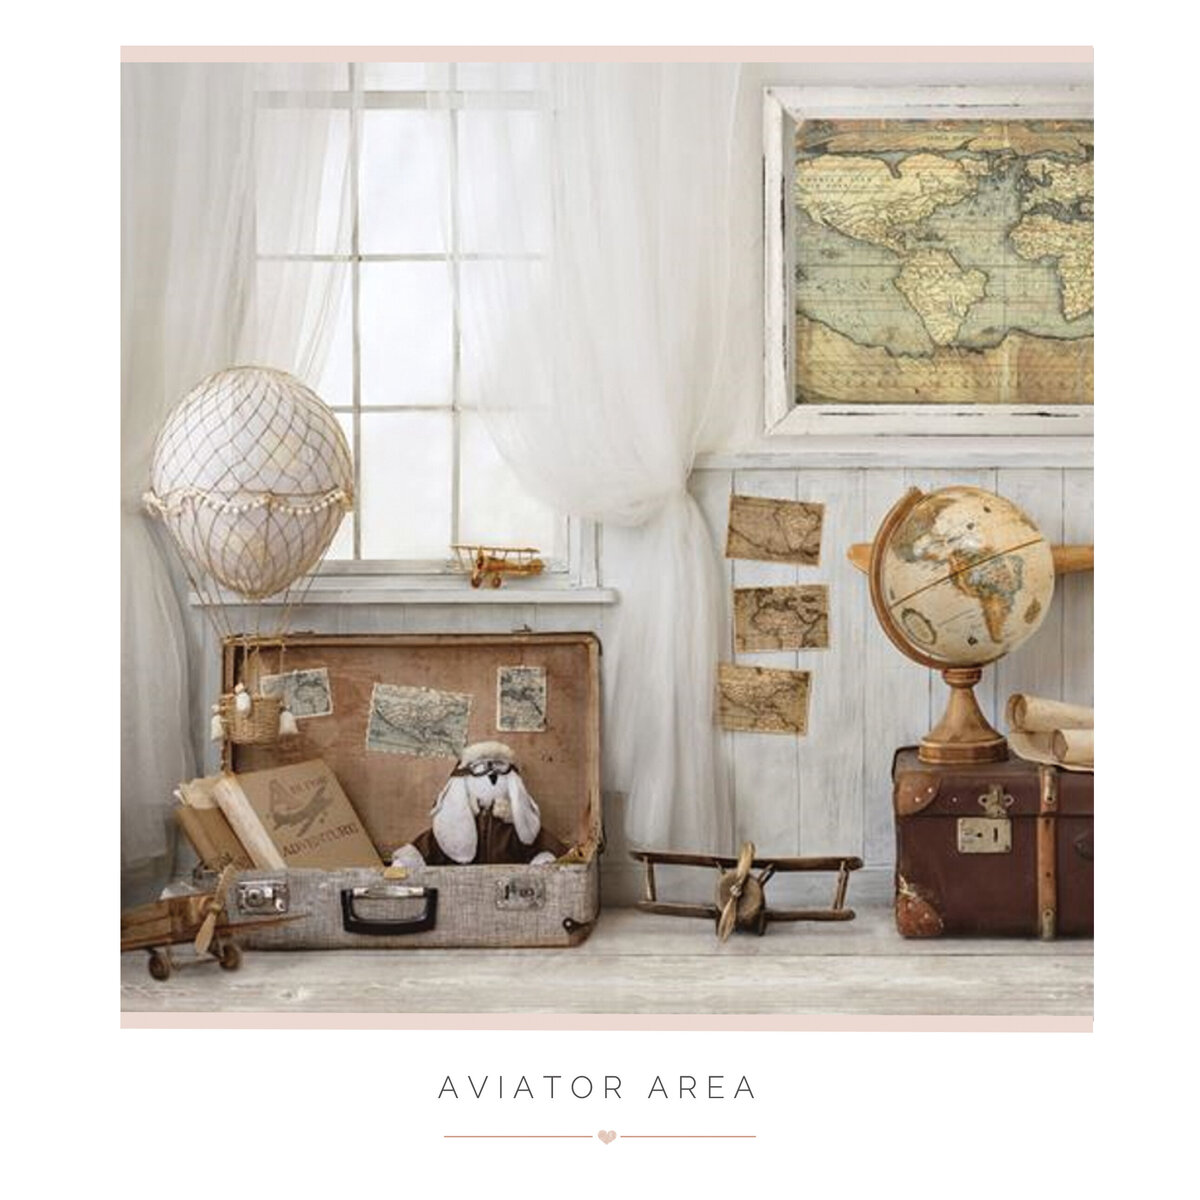 Aviator Area